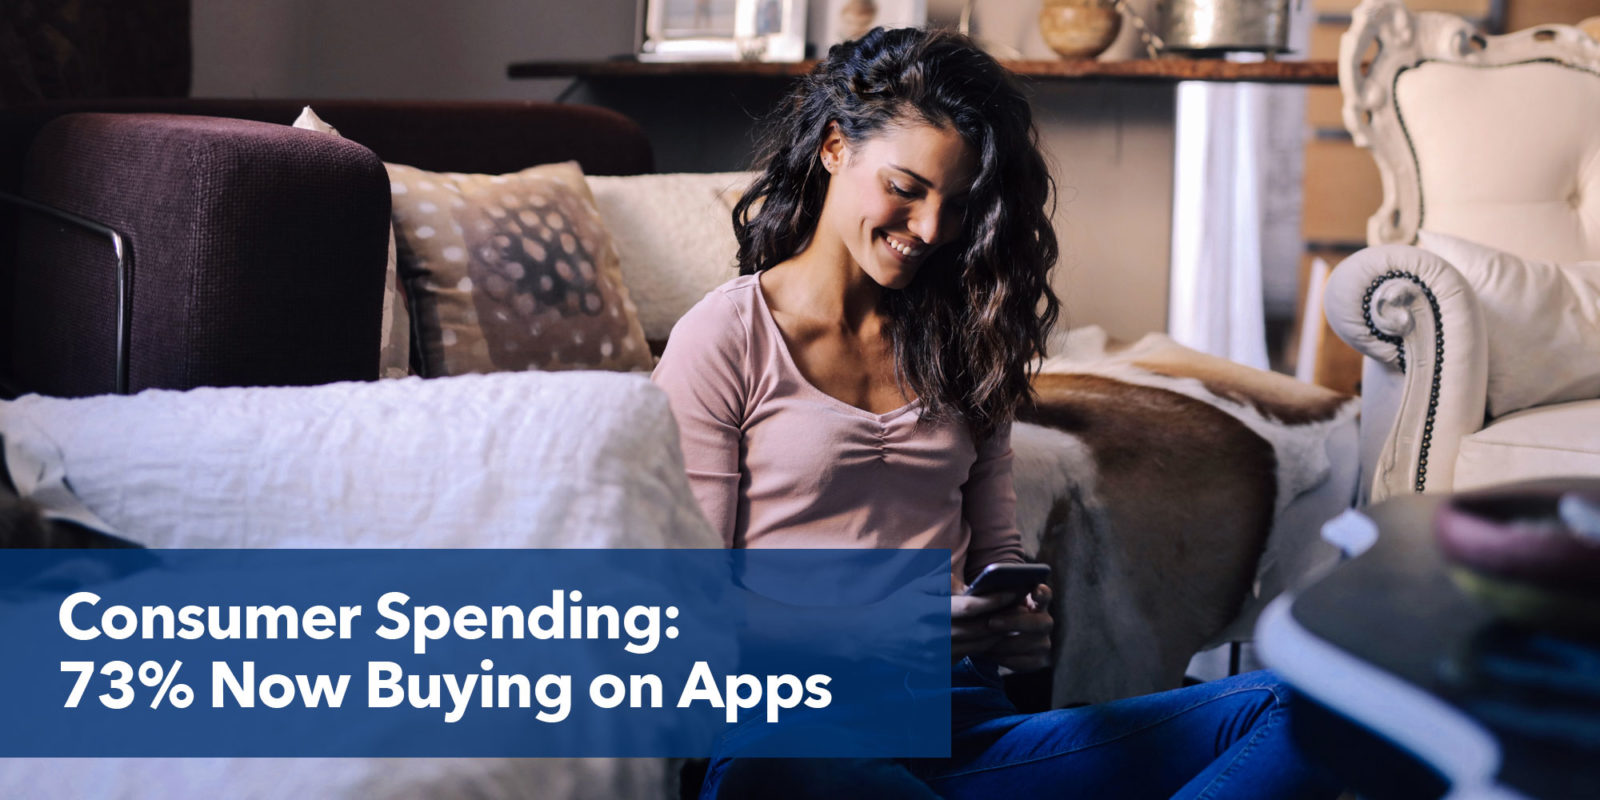 Consumer Spending: 73% Now Buying on Apps